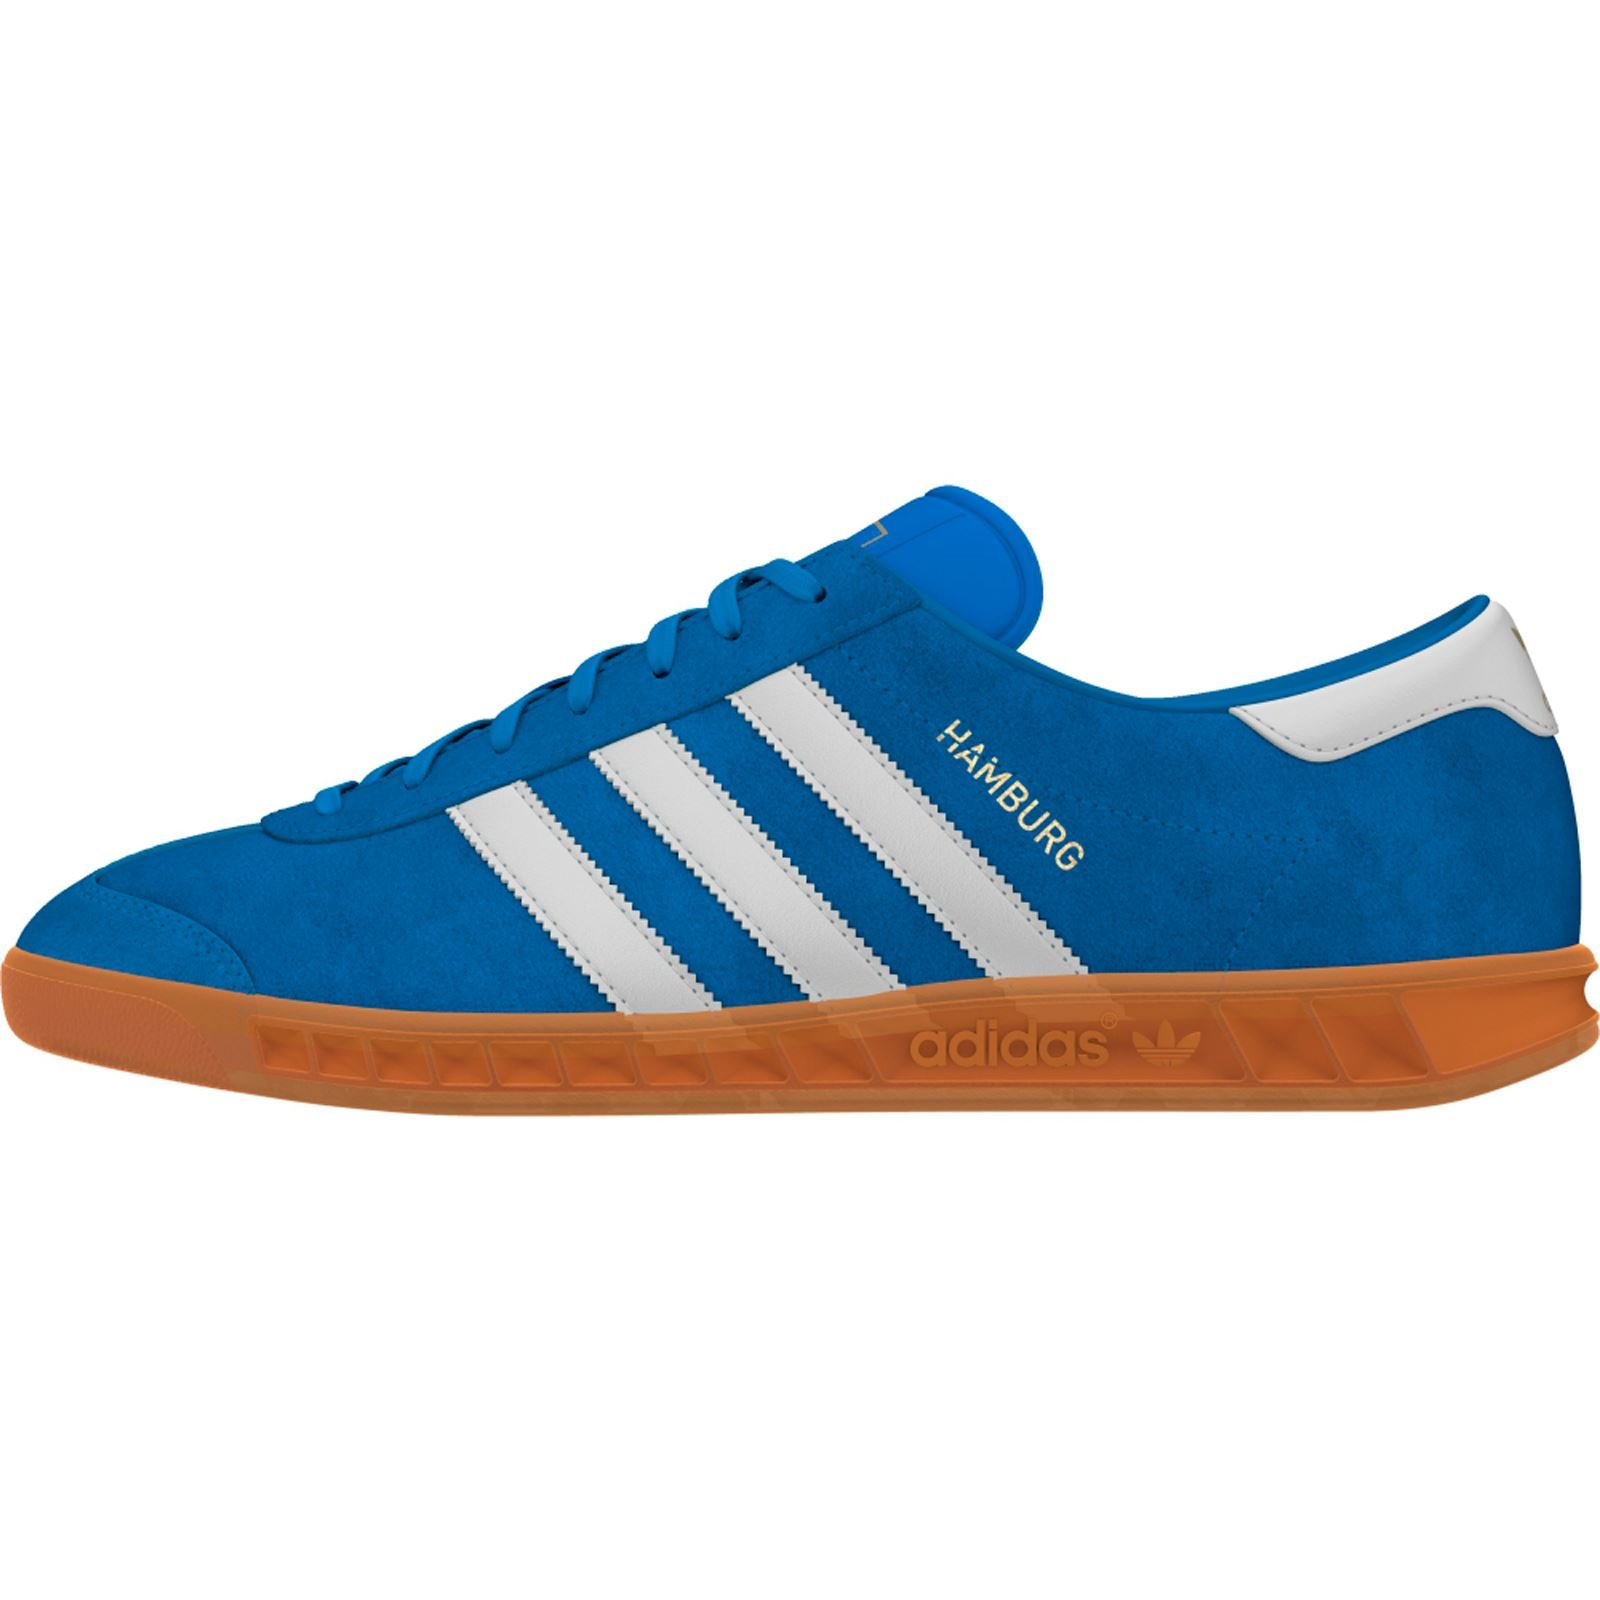 adidas originals hamburg - zapatillas